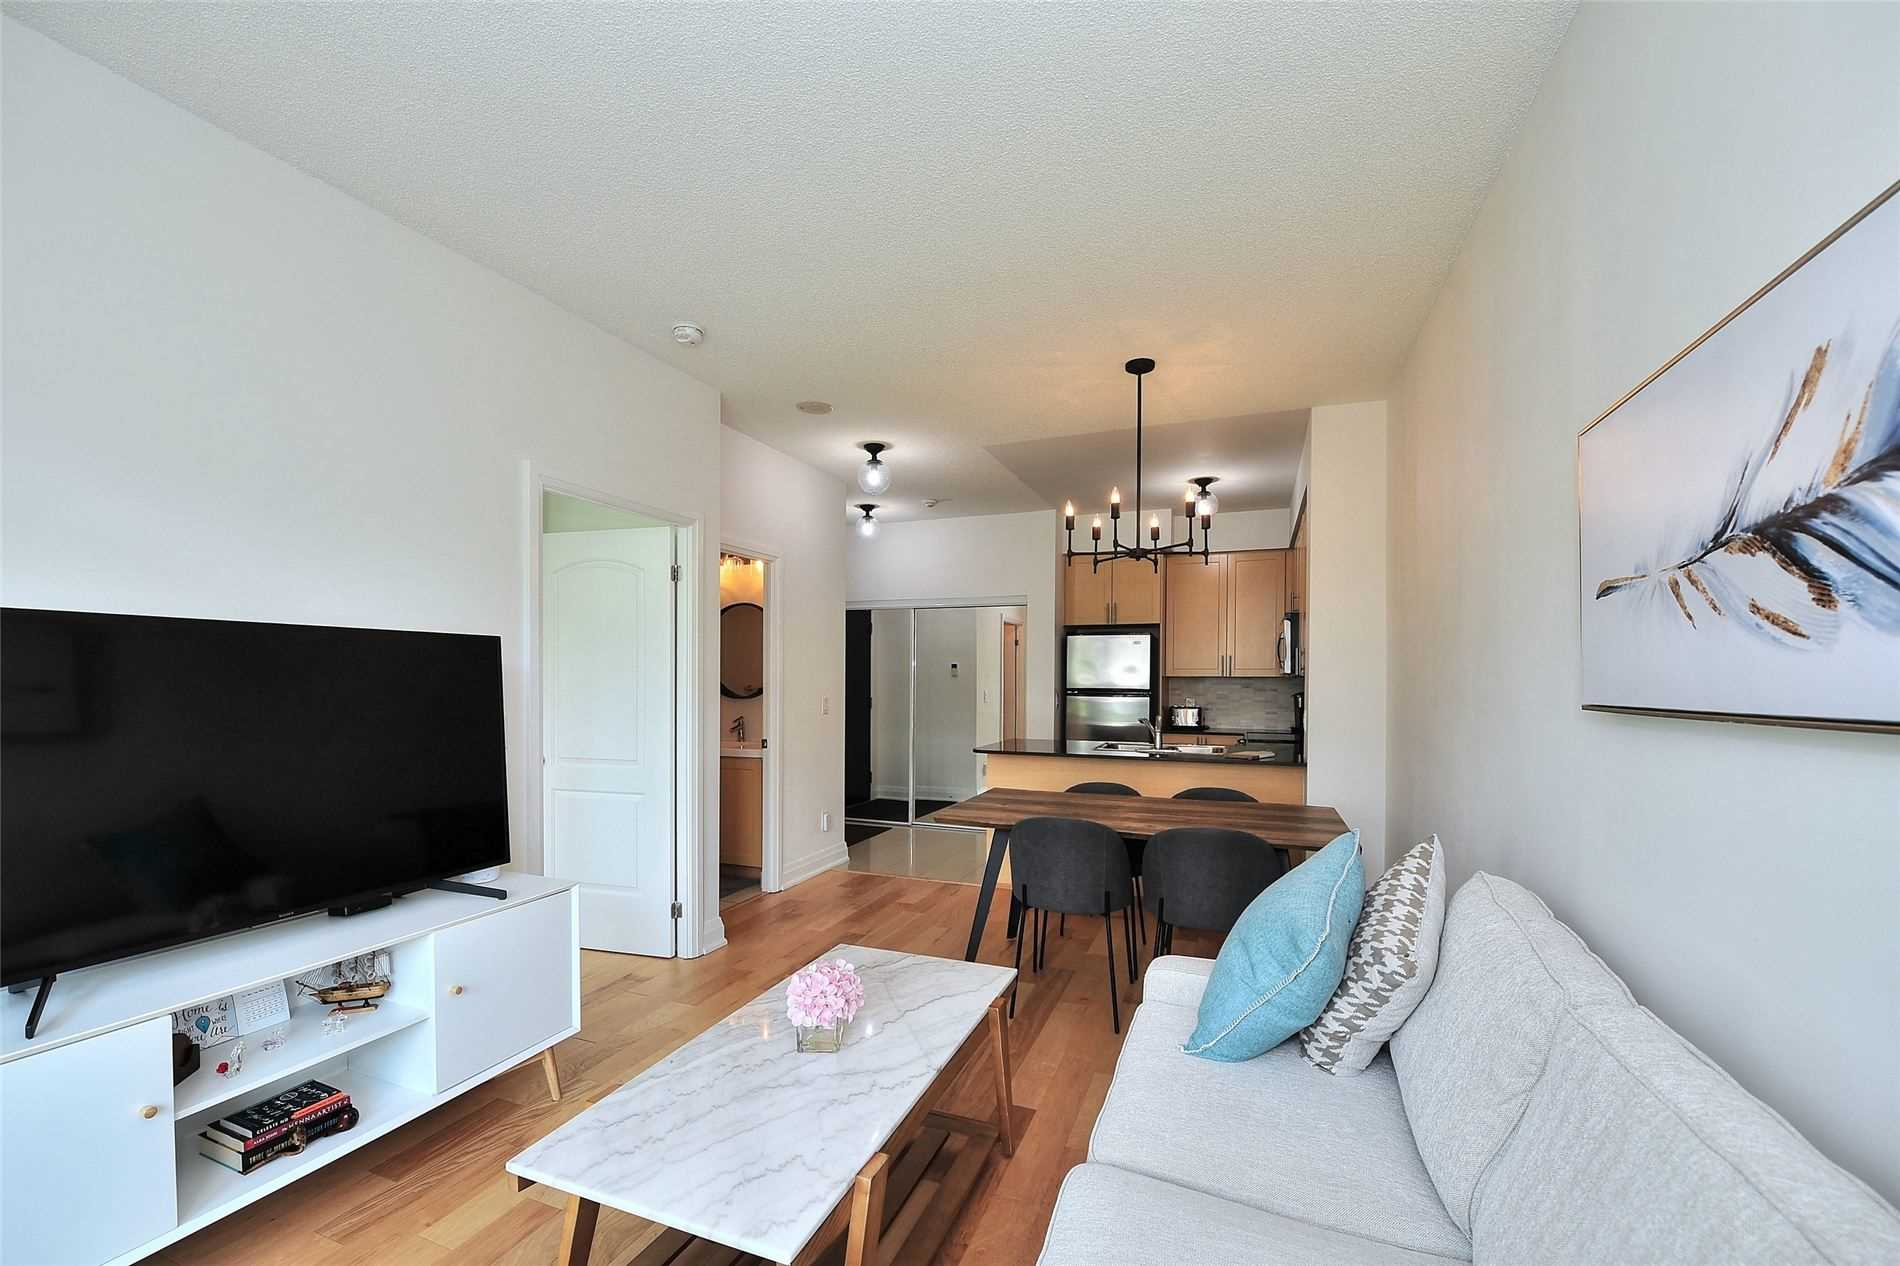 Image 3 of 30 showing inside of 1 Bedroom Condo Apt Apartment for Sale at 30 North Park Rd Unit# 101, Vaughan L4J0G6